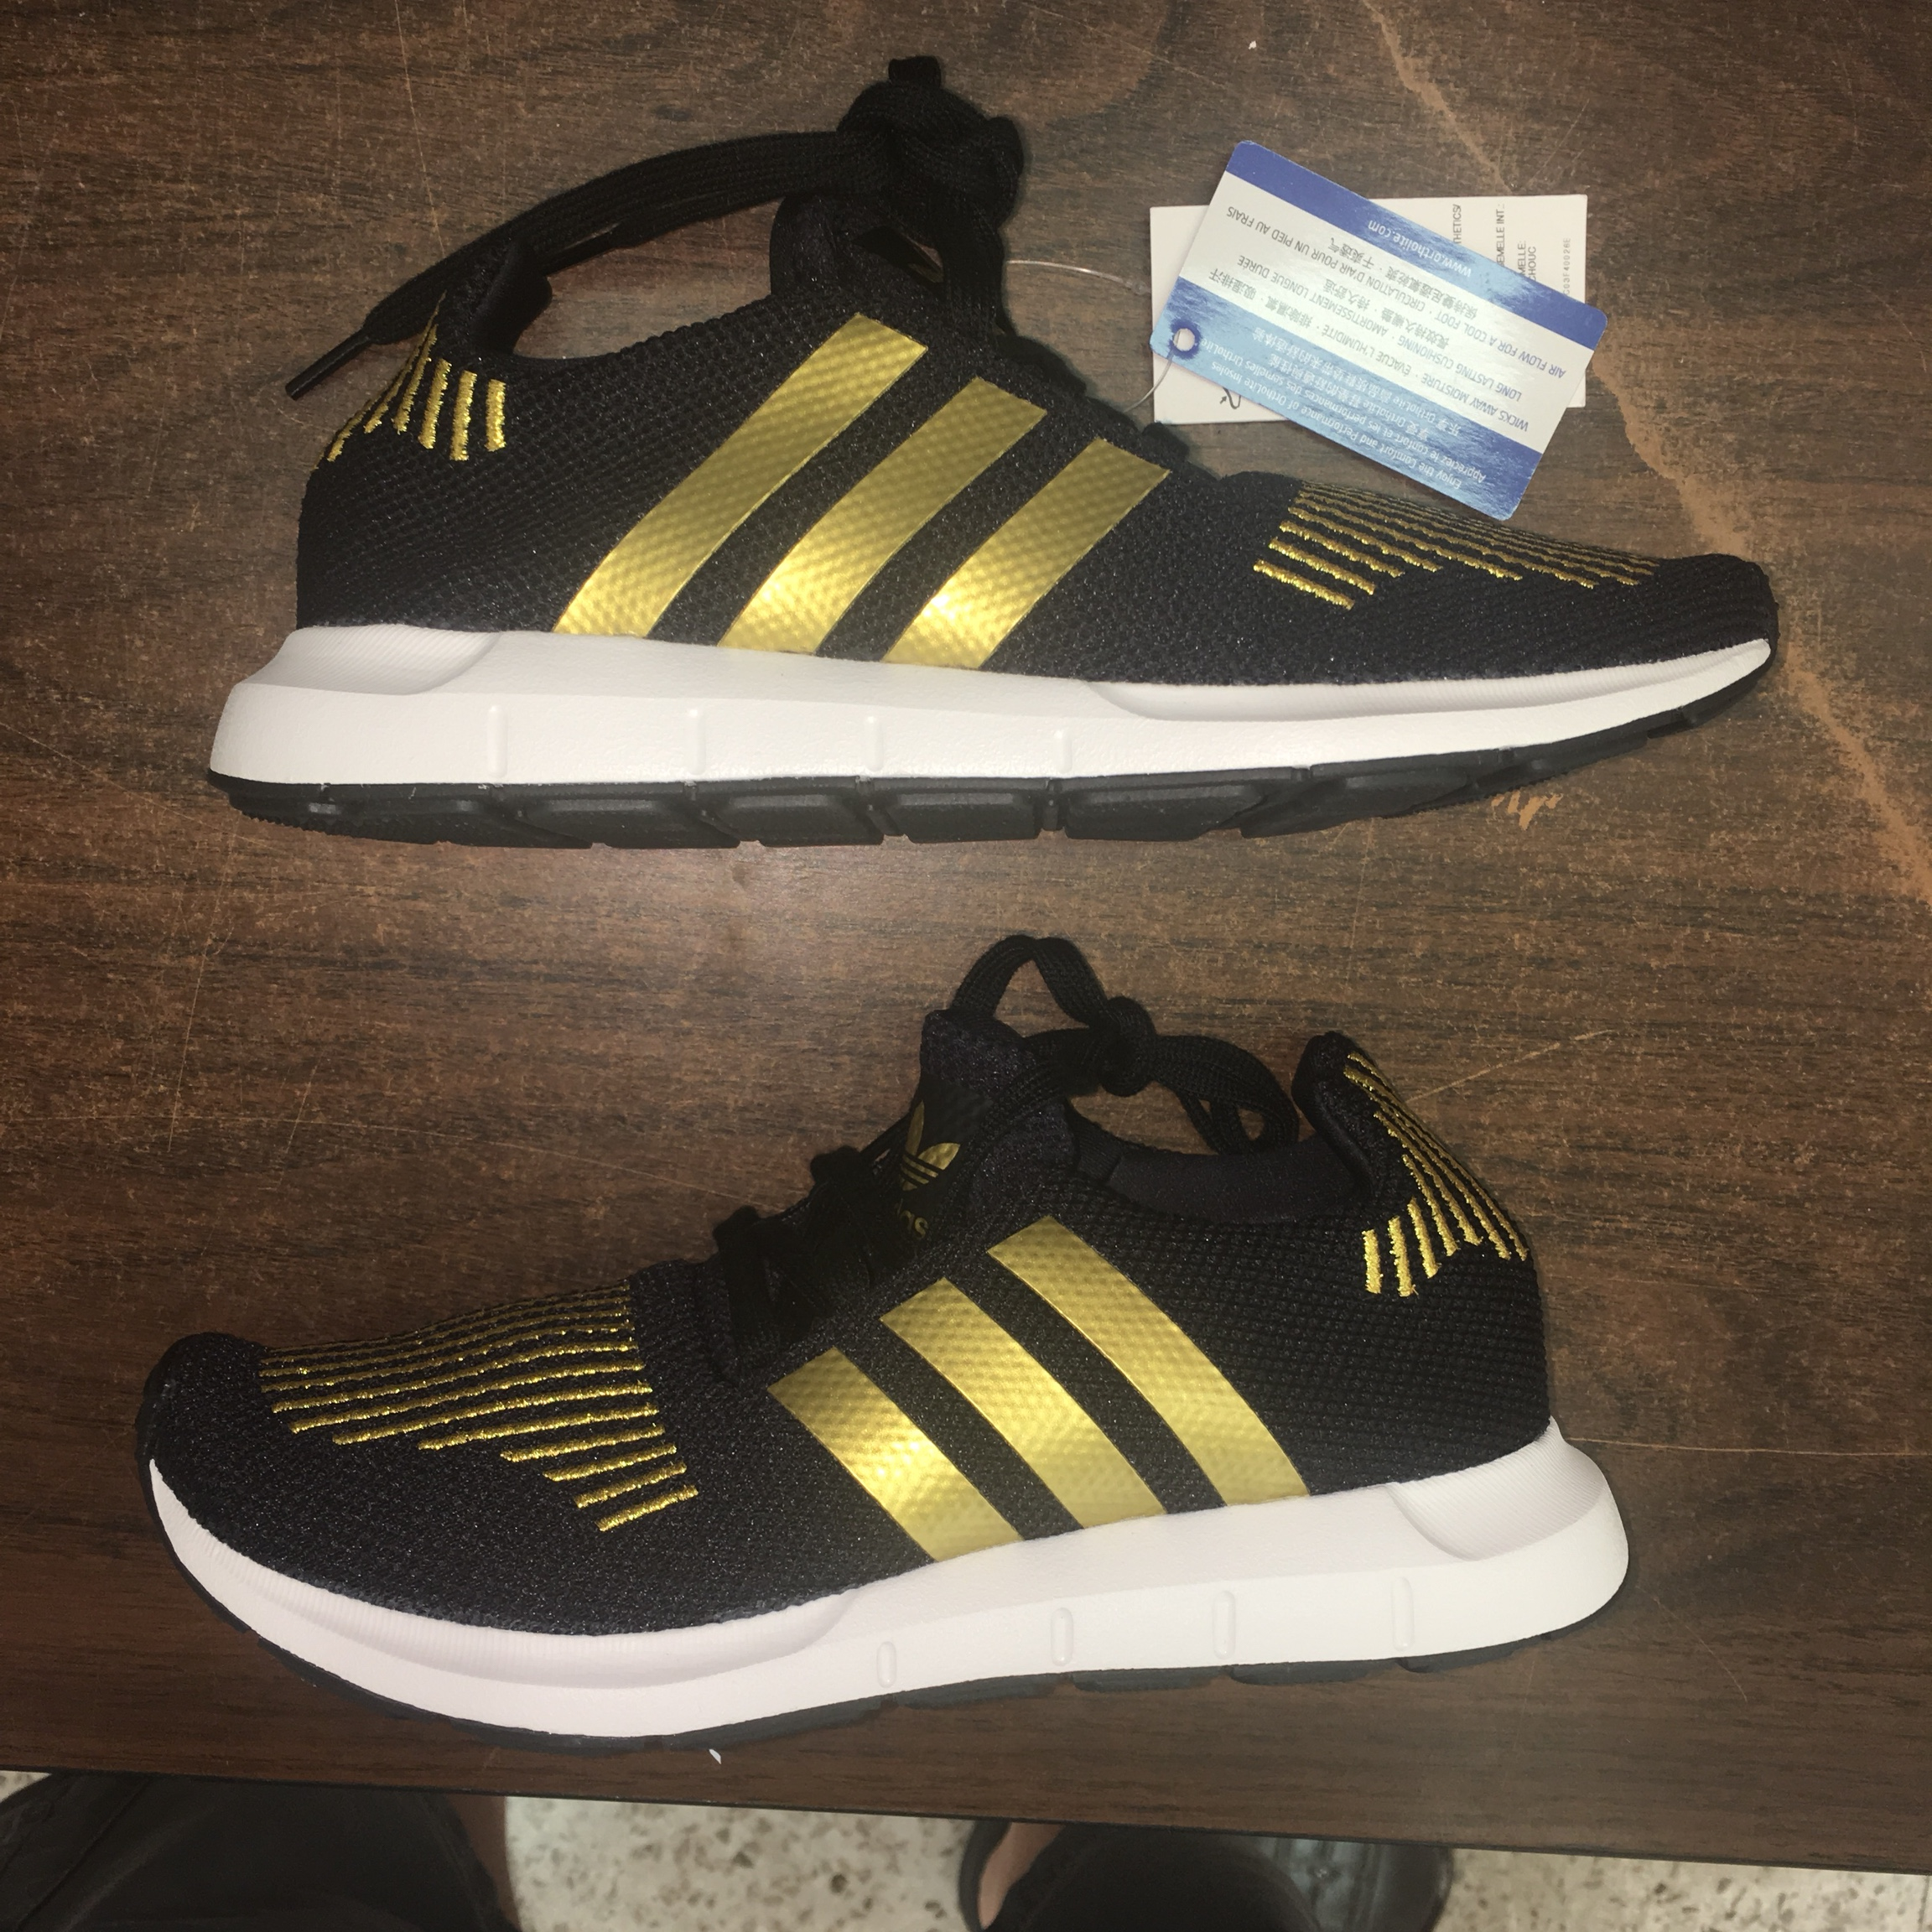 Swift Run Color: Black and Gold - Depop